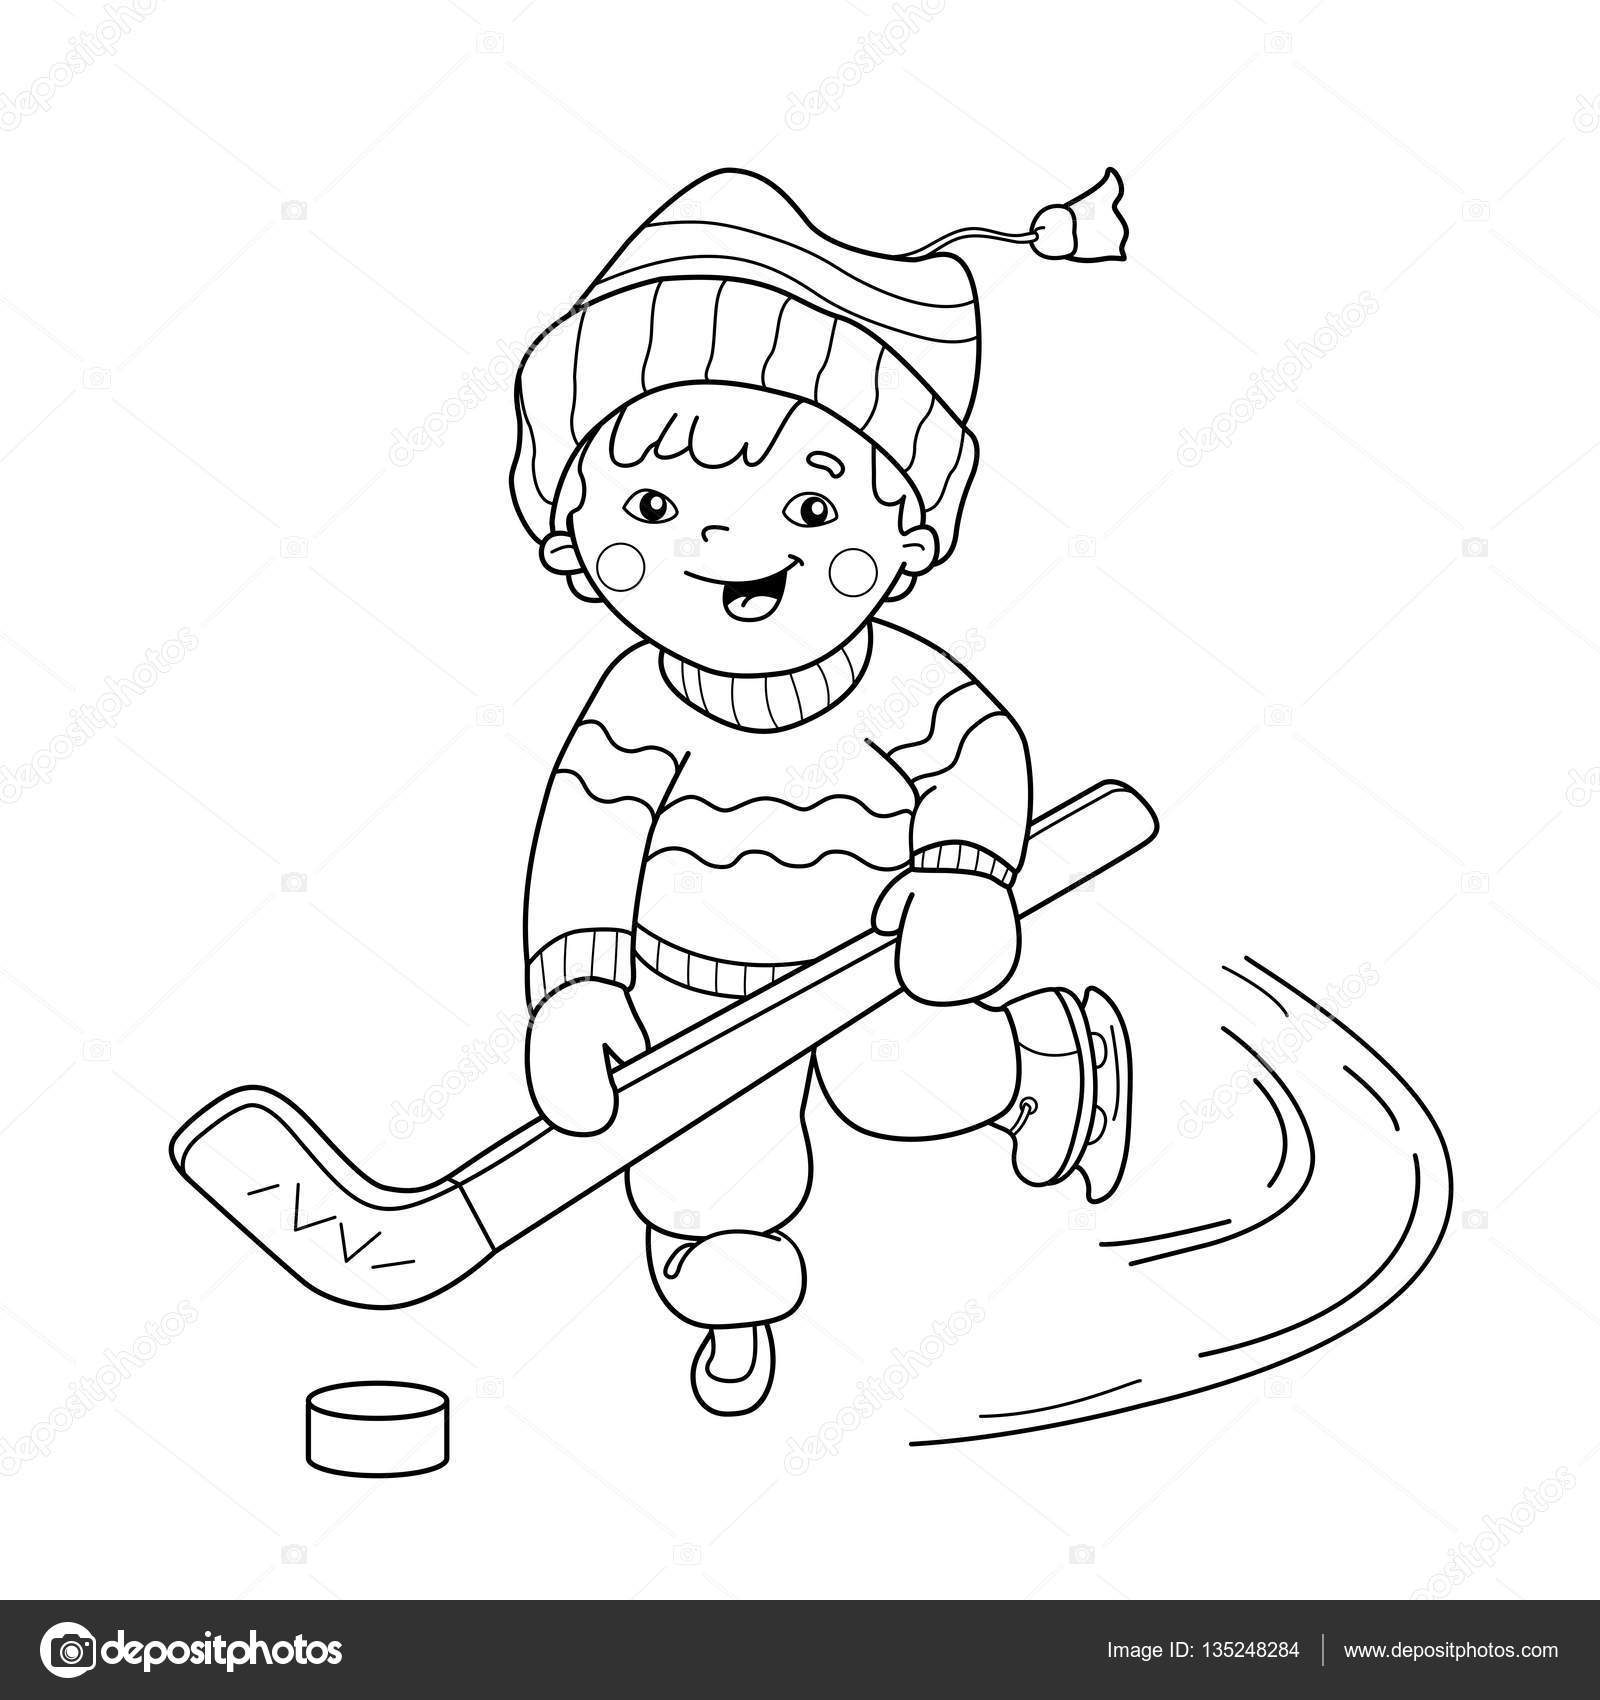 Coloring Page Outline cartoon boy playing hockey Winter sports